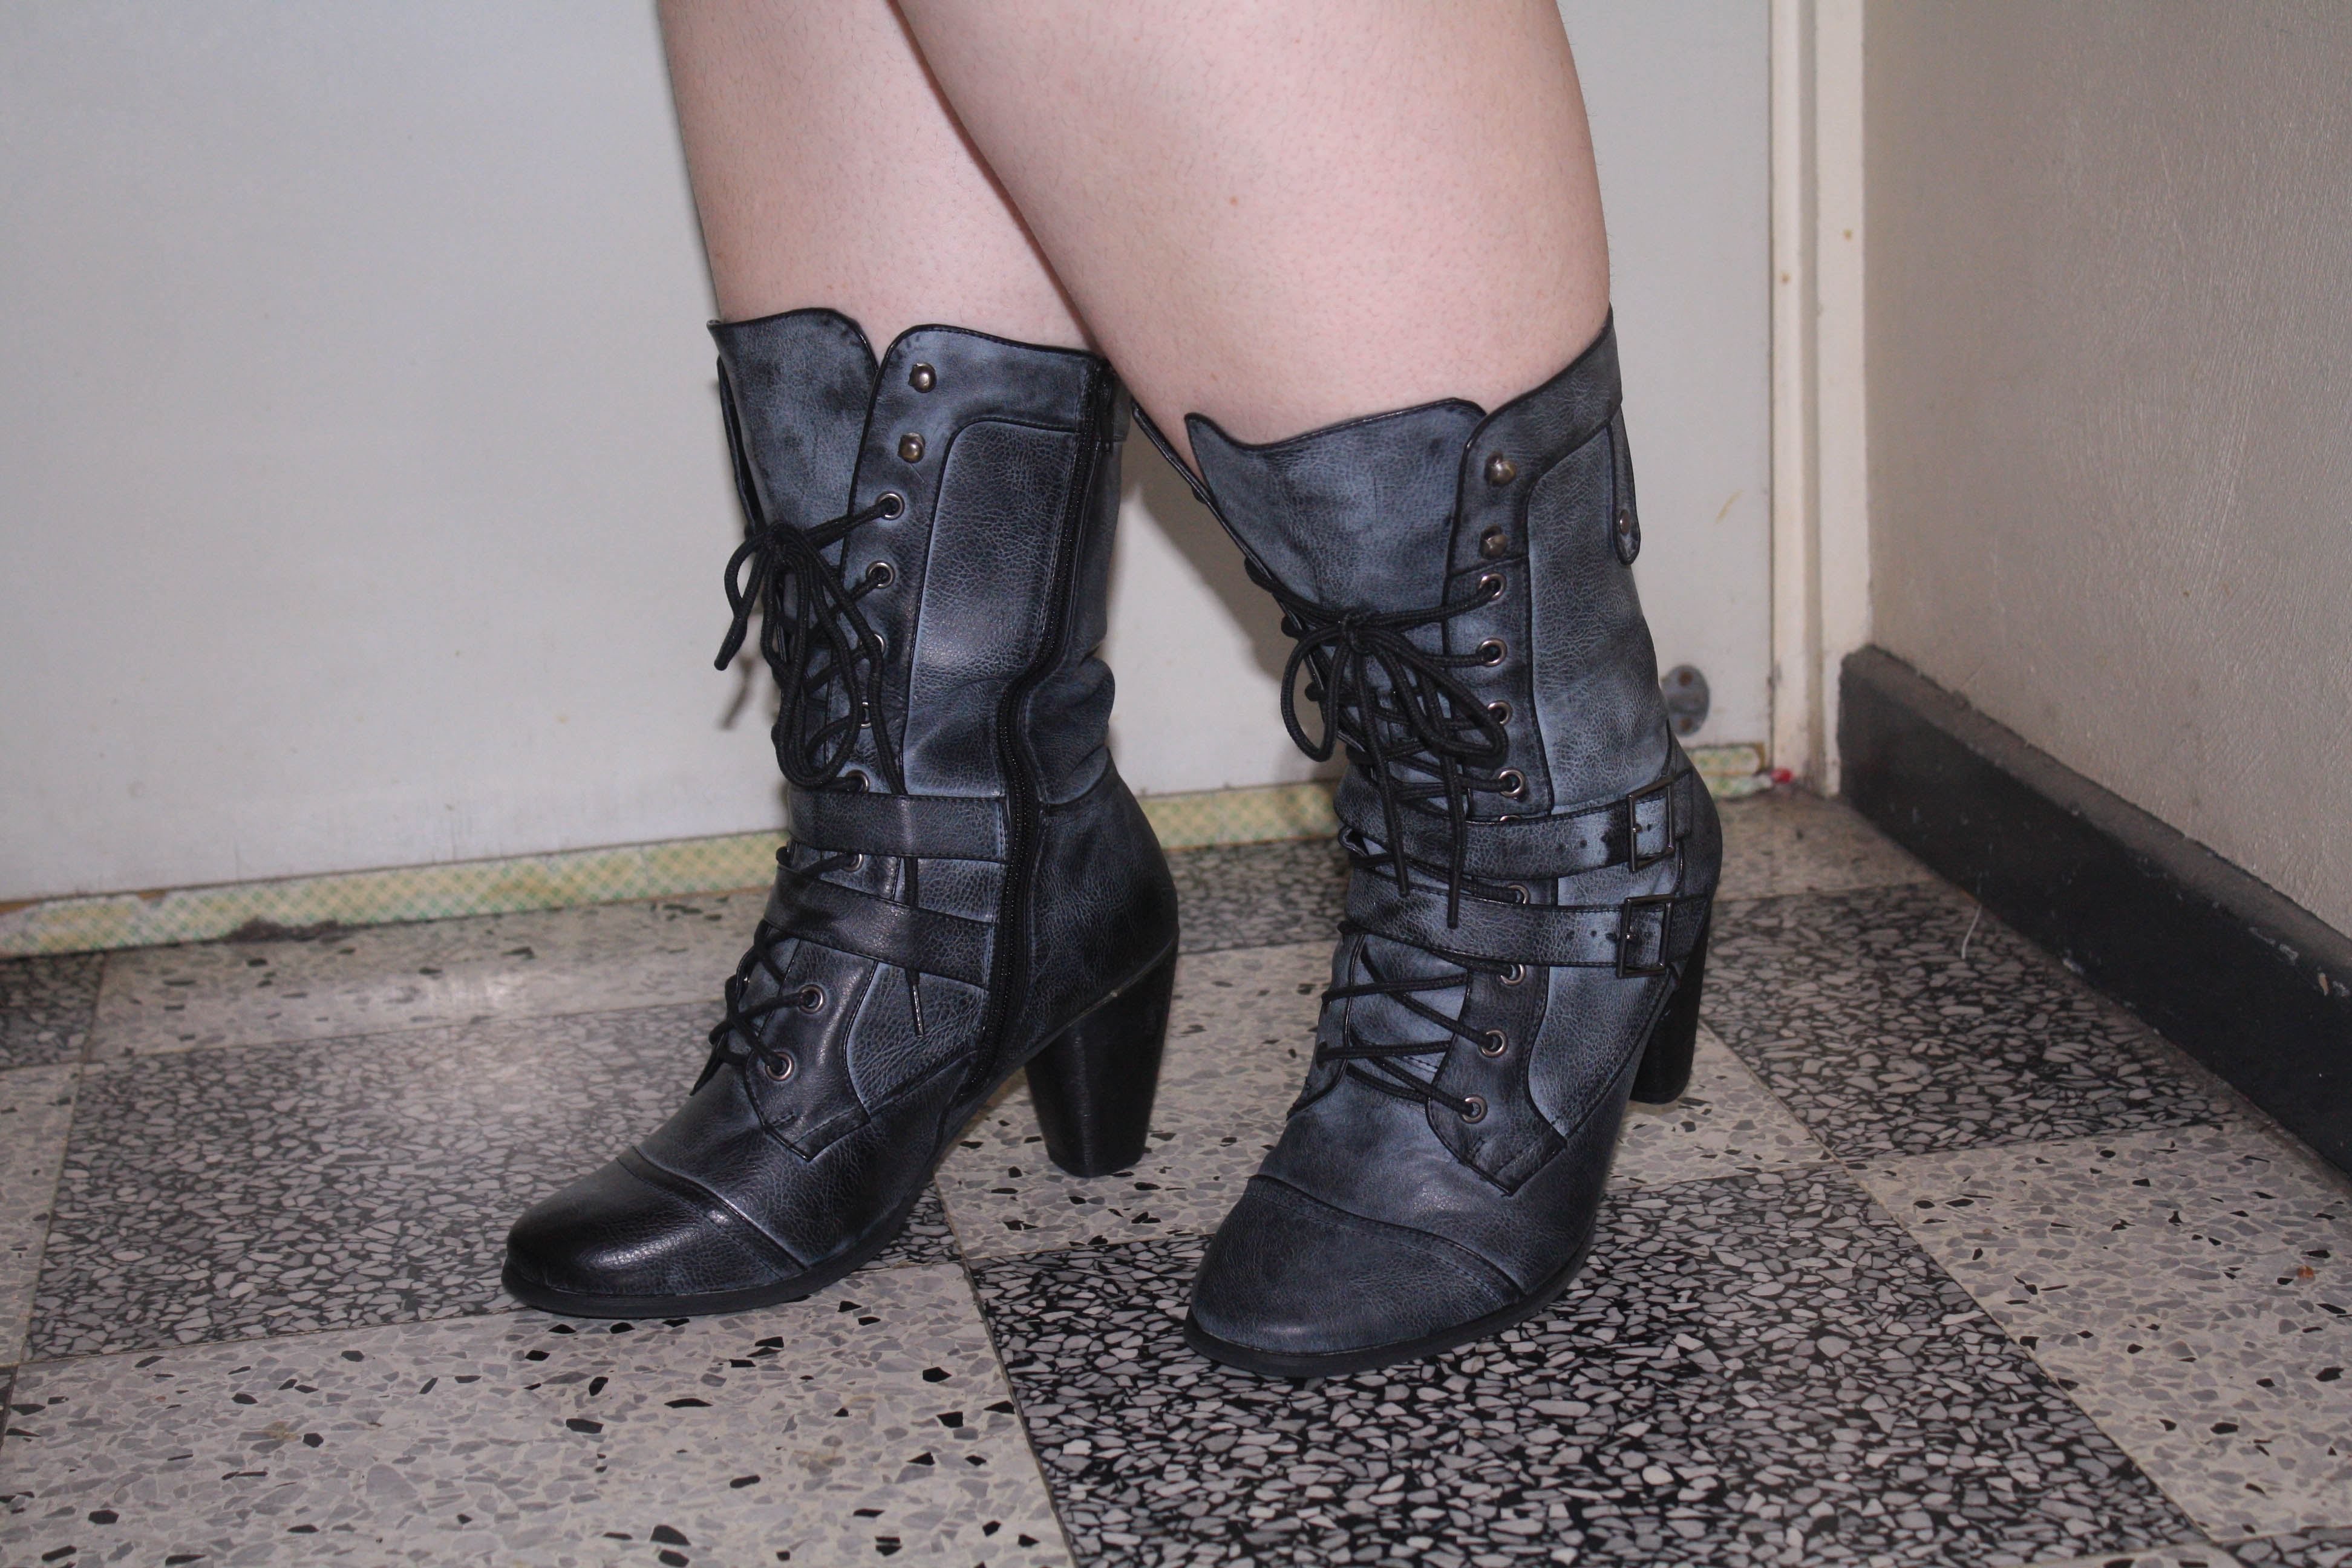 Photo of my feet and calves shod in black and grey distressed looking witchy boots. They lace up and have two tabs that reach across the foot and buckle on the other side.